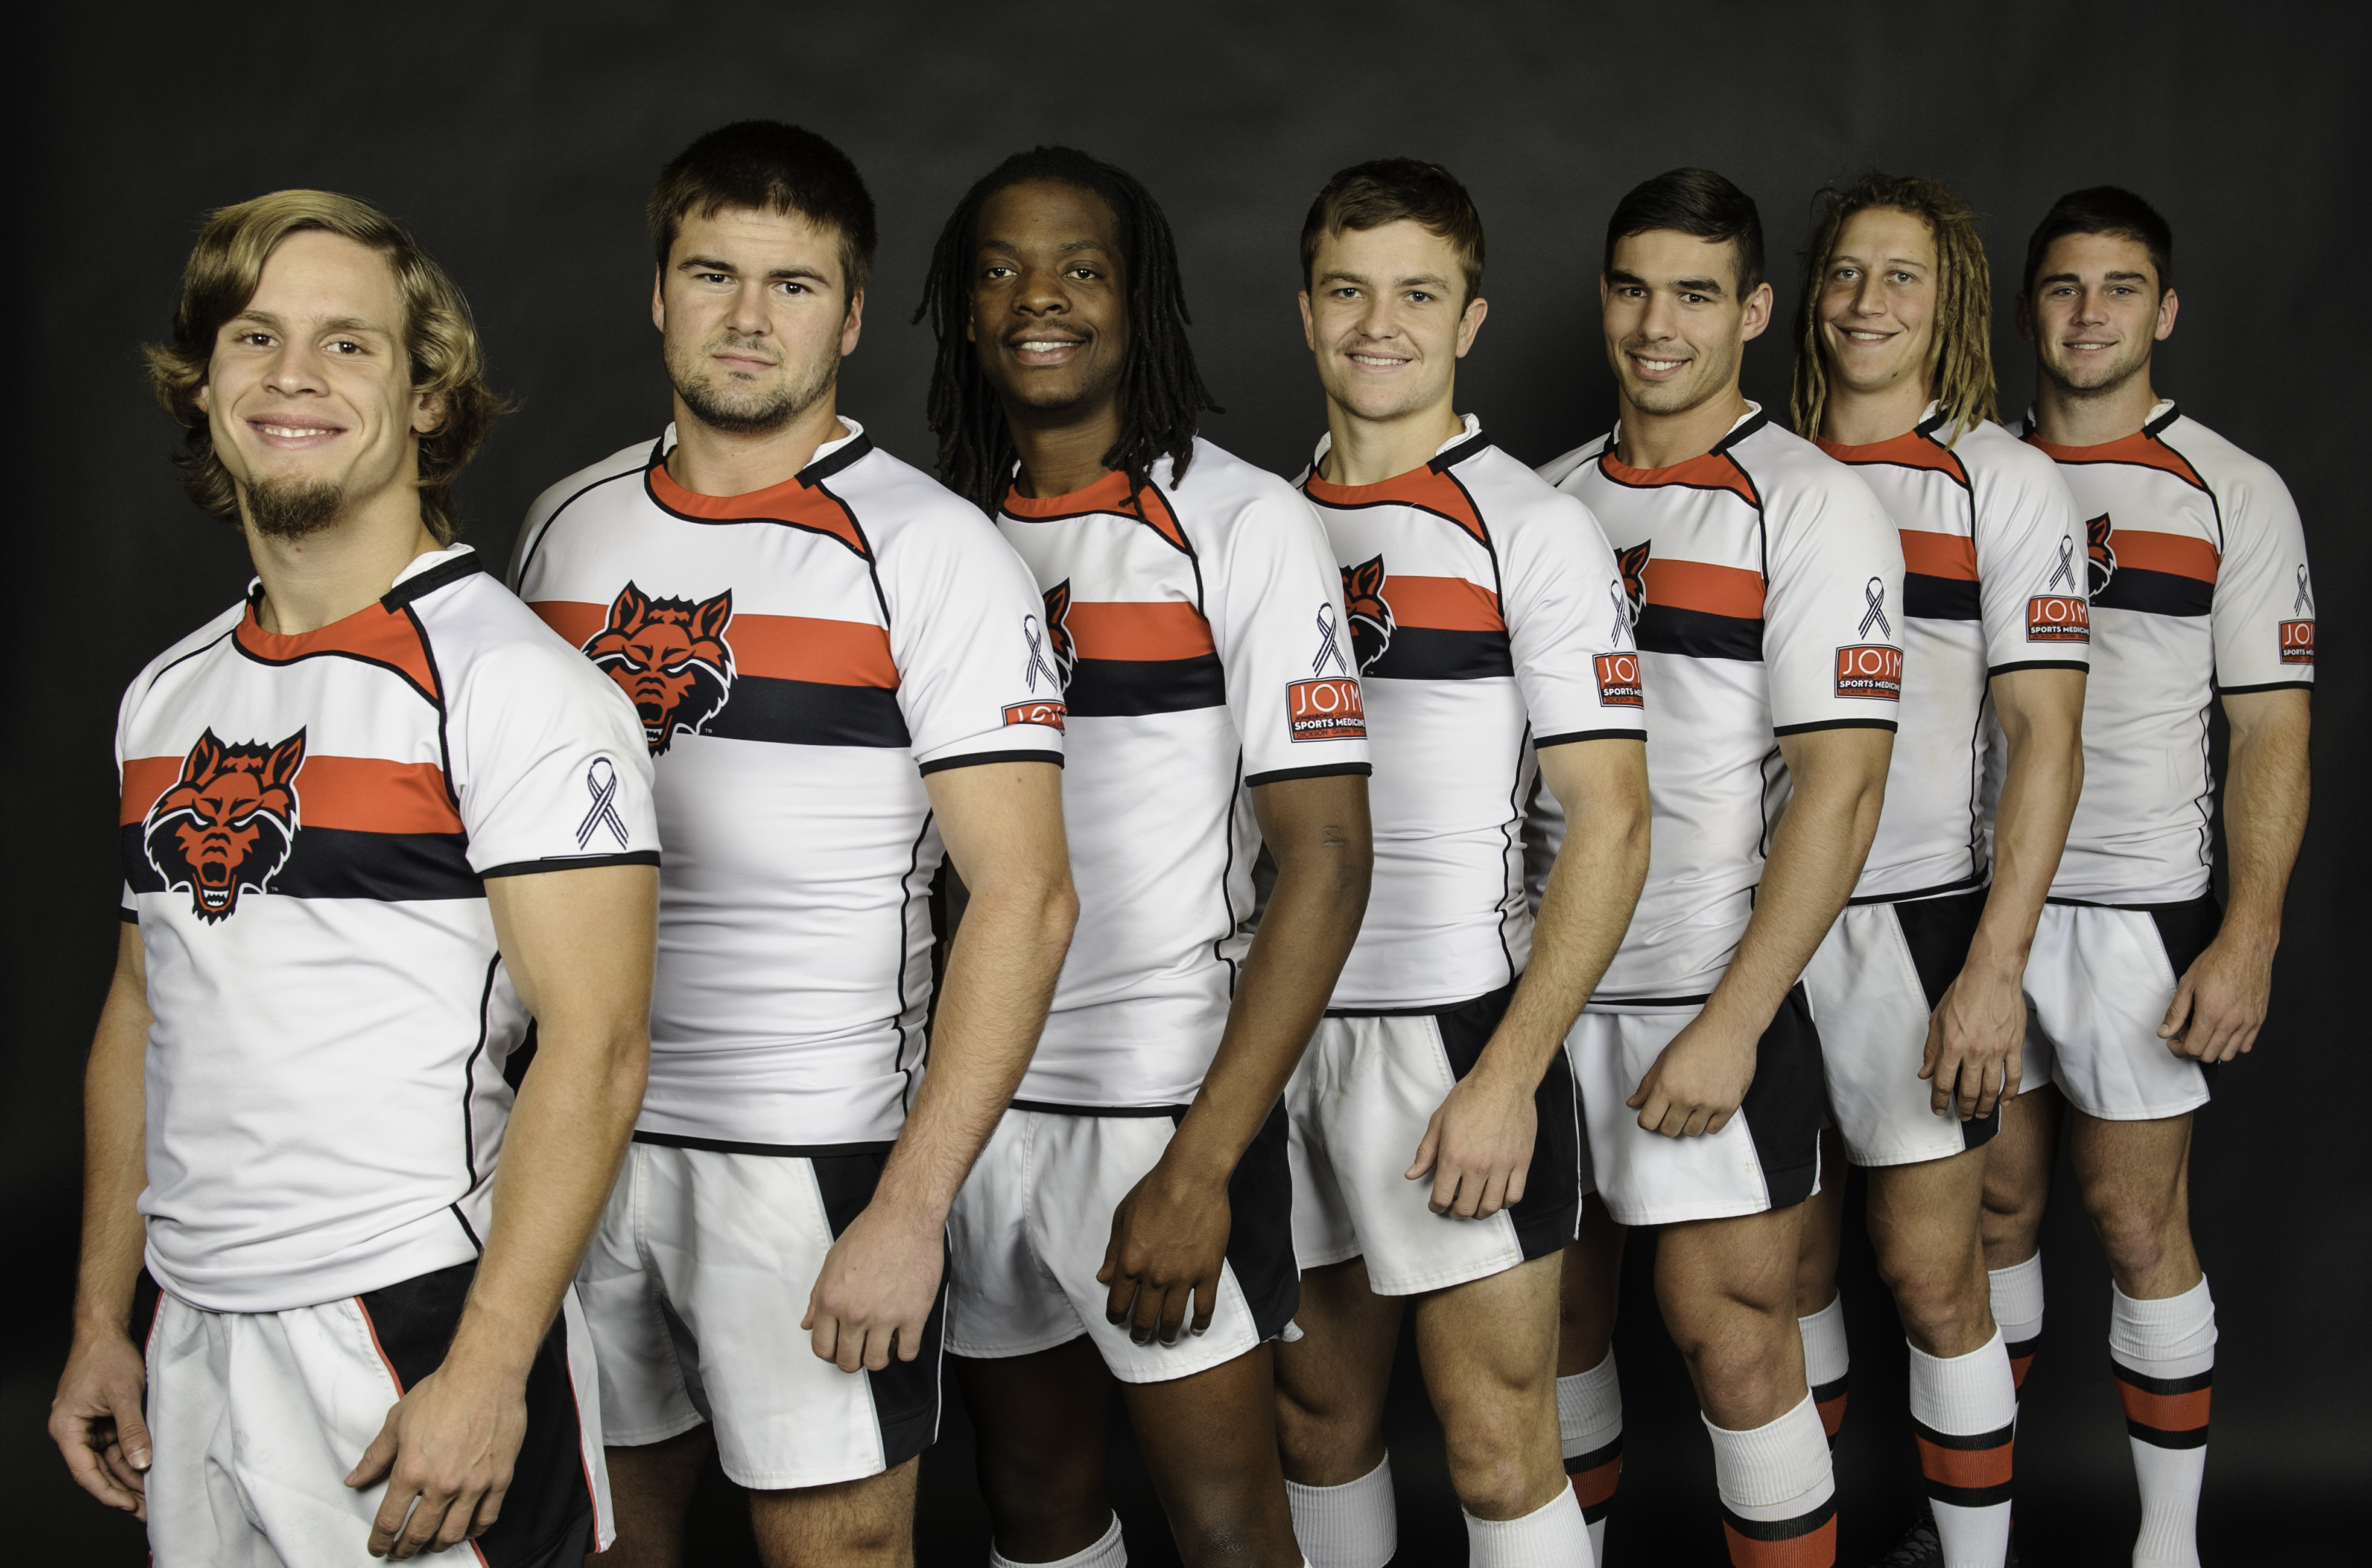 Rugby Team with ALS ribbon